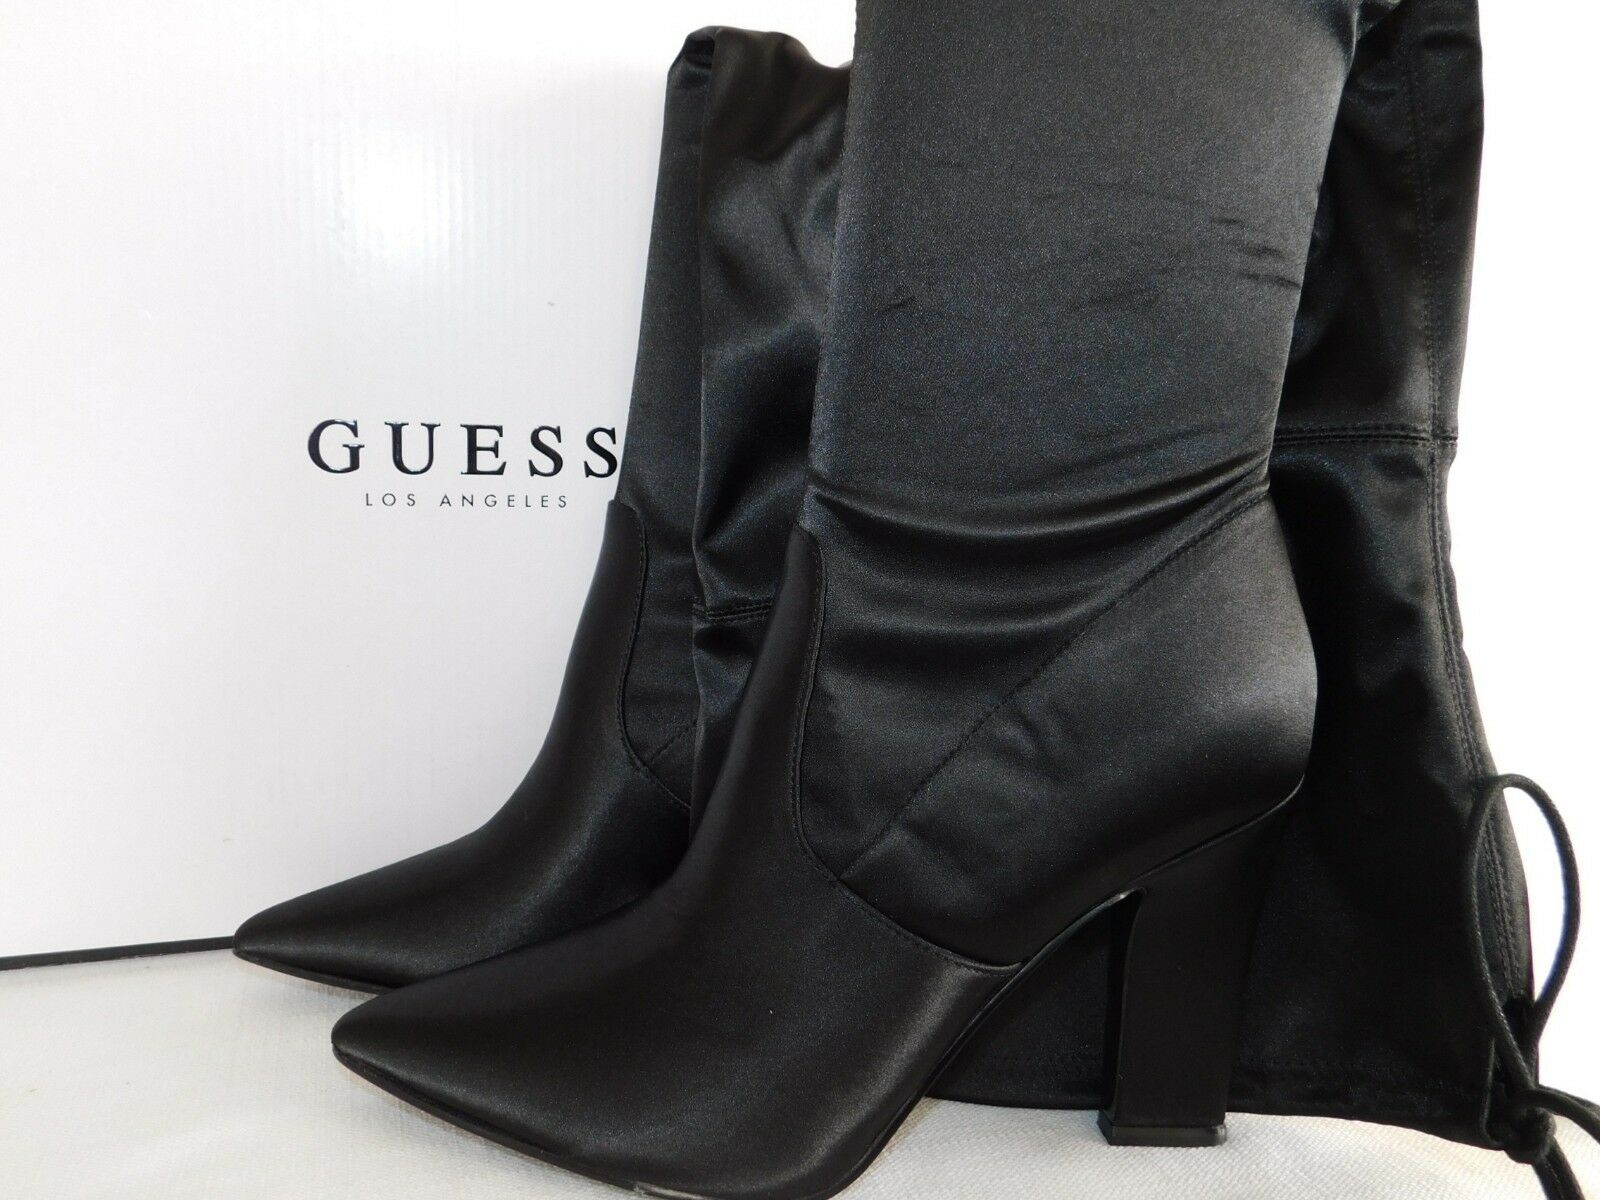 NEW WOMENS SIZE 6 BLACK GUESS ANGELEY OVER THE KNEE HIGH BOOTS PARTY BLOCK HEEL